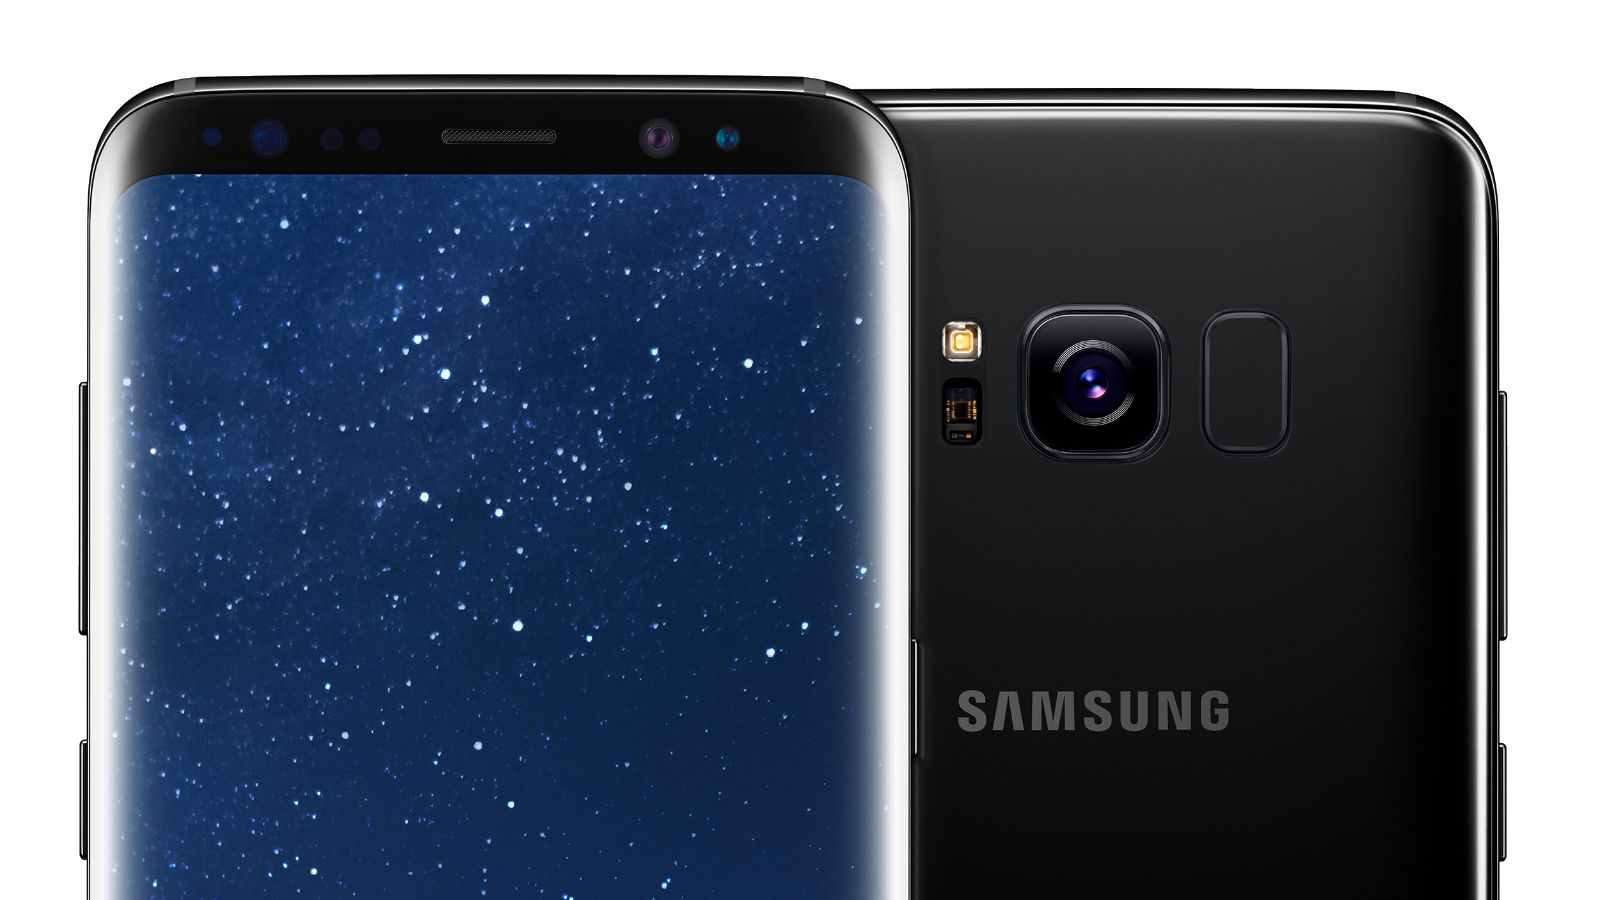 Samsung Galaxy S8 Colors All Of The Options Available Samsung Galaxy Samsung Samsung Galaxy Note 8